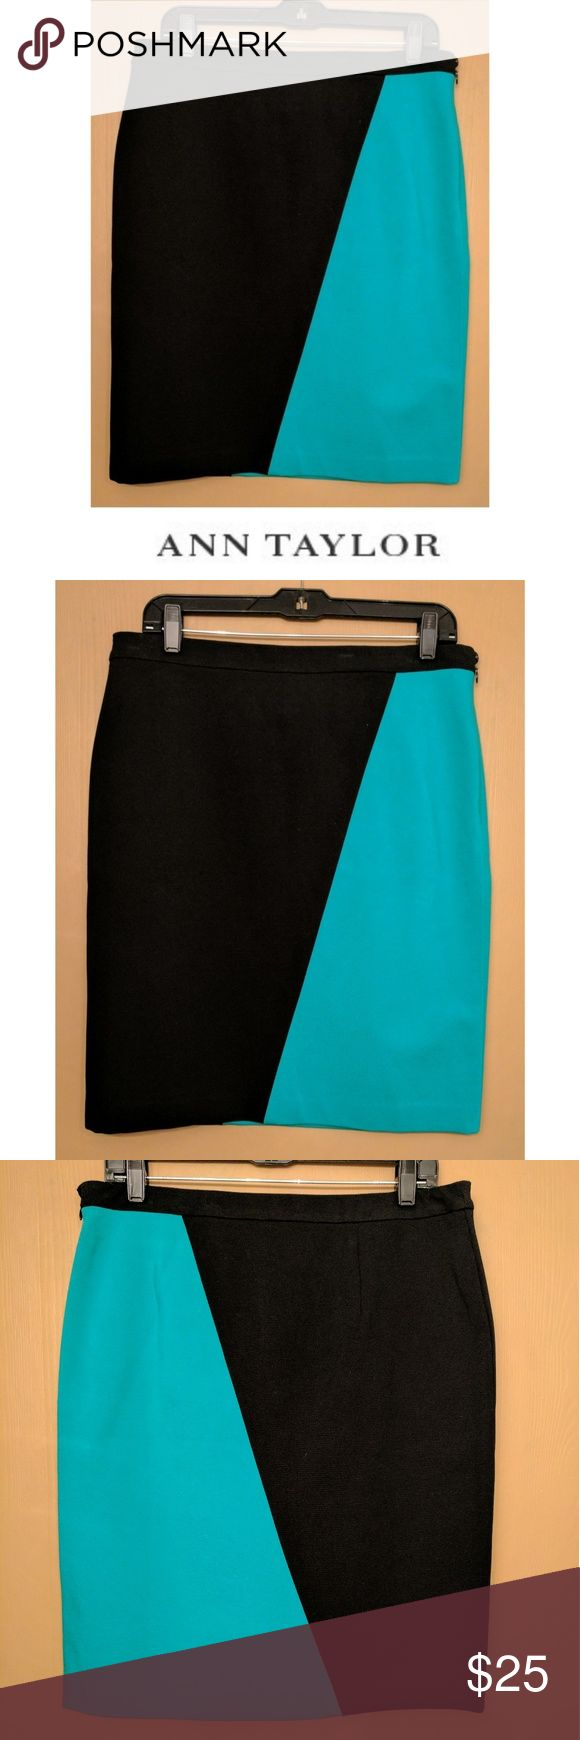 "NWT Ann Taylor Green Black Design Skirt This gorgeous Ann Taylor skirt is perfect for dressing on any occasion! Rayon nylon blend material with 5% spandex for stretch fit. Emerald green and black two toned design, stretch compression spandex waist for comfortable, customized fit. Size 10, 22"" length, waist unstretched measured flat 16.5"". Dress up with heels and blouses, flats and blazers... Possibilities are endless! NWT, UNUSED, NO DAMAGES. Grab yours for less and look sexy in Ann Taylor…"